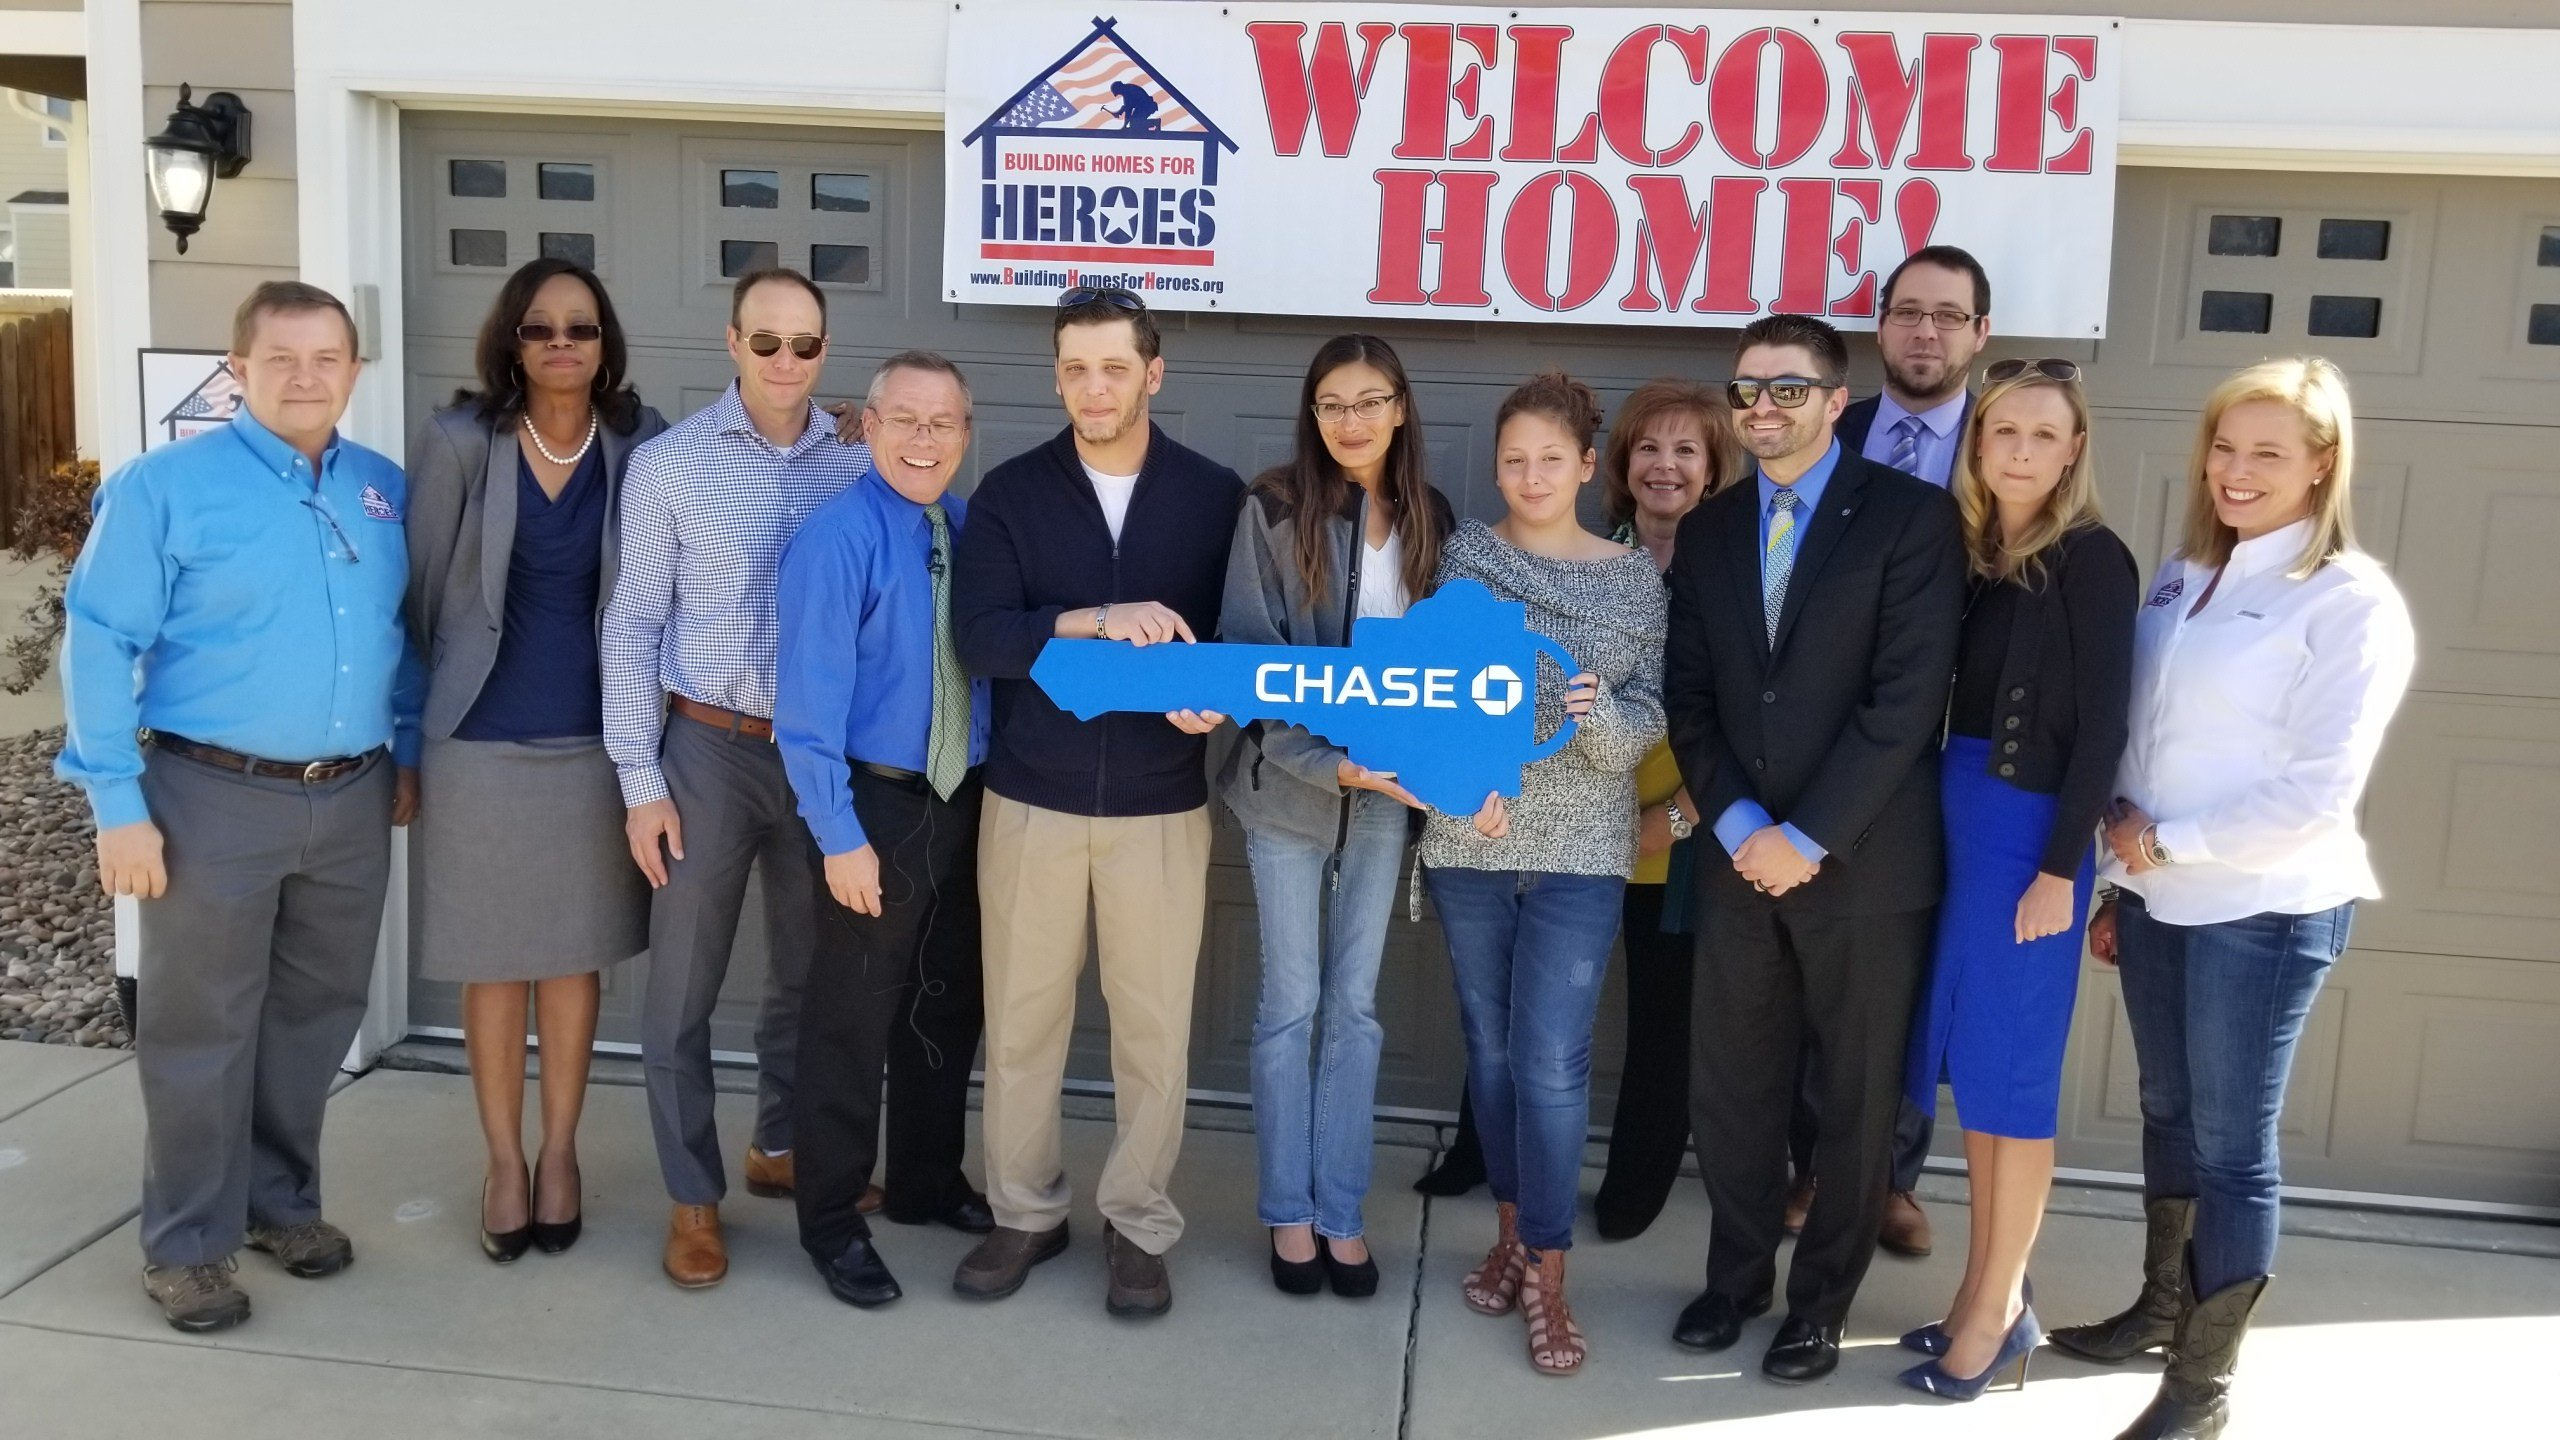 A wounded veteran receives a home in Colorado Springs on Oct. 19, 2017.